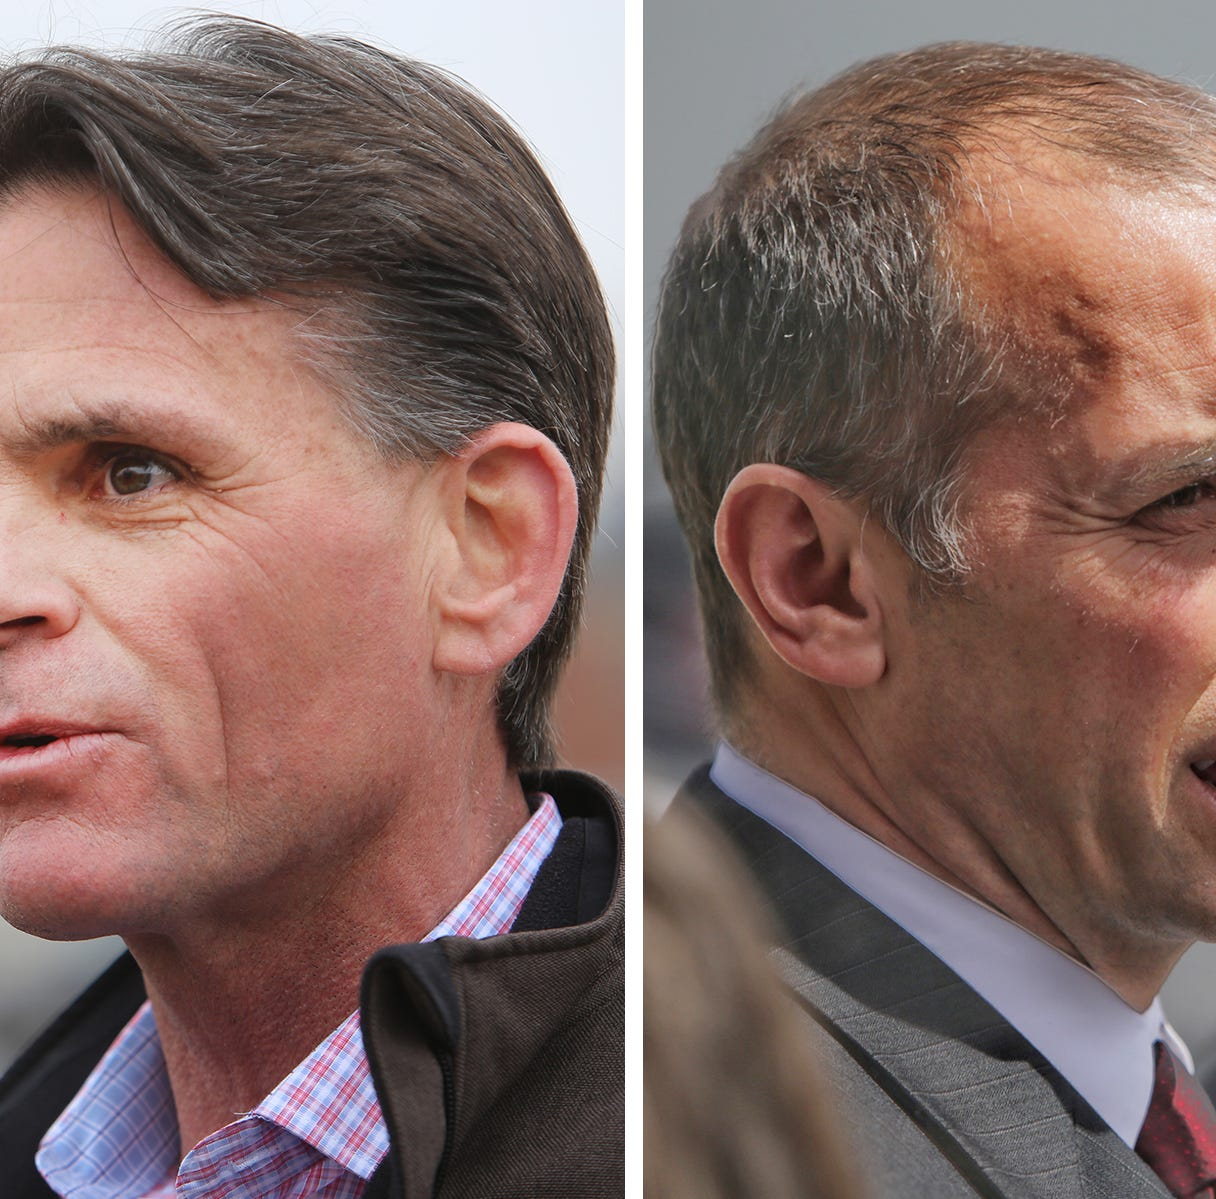 'It's not personal,' Hackel says of public spat with Macomb County prosecutor Smith